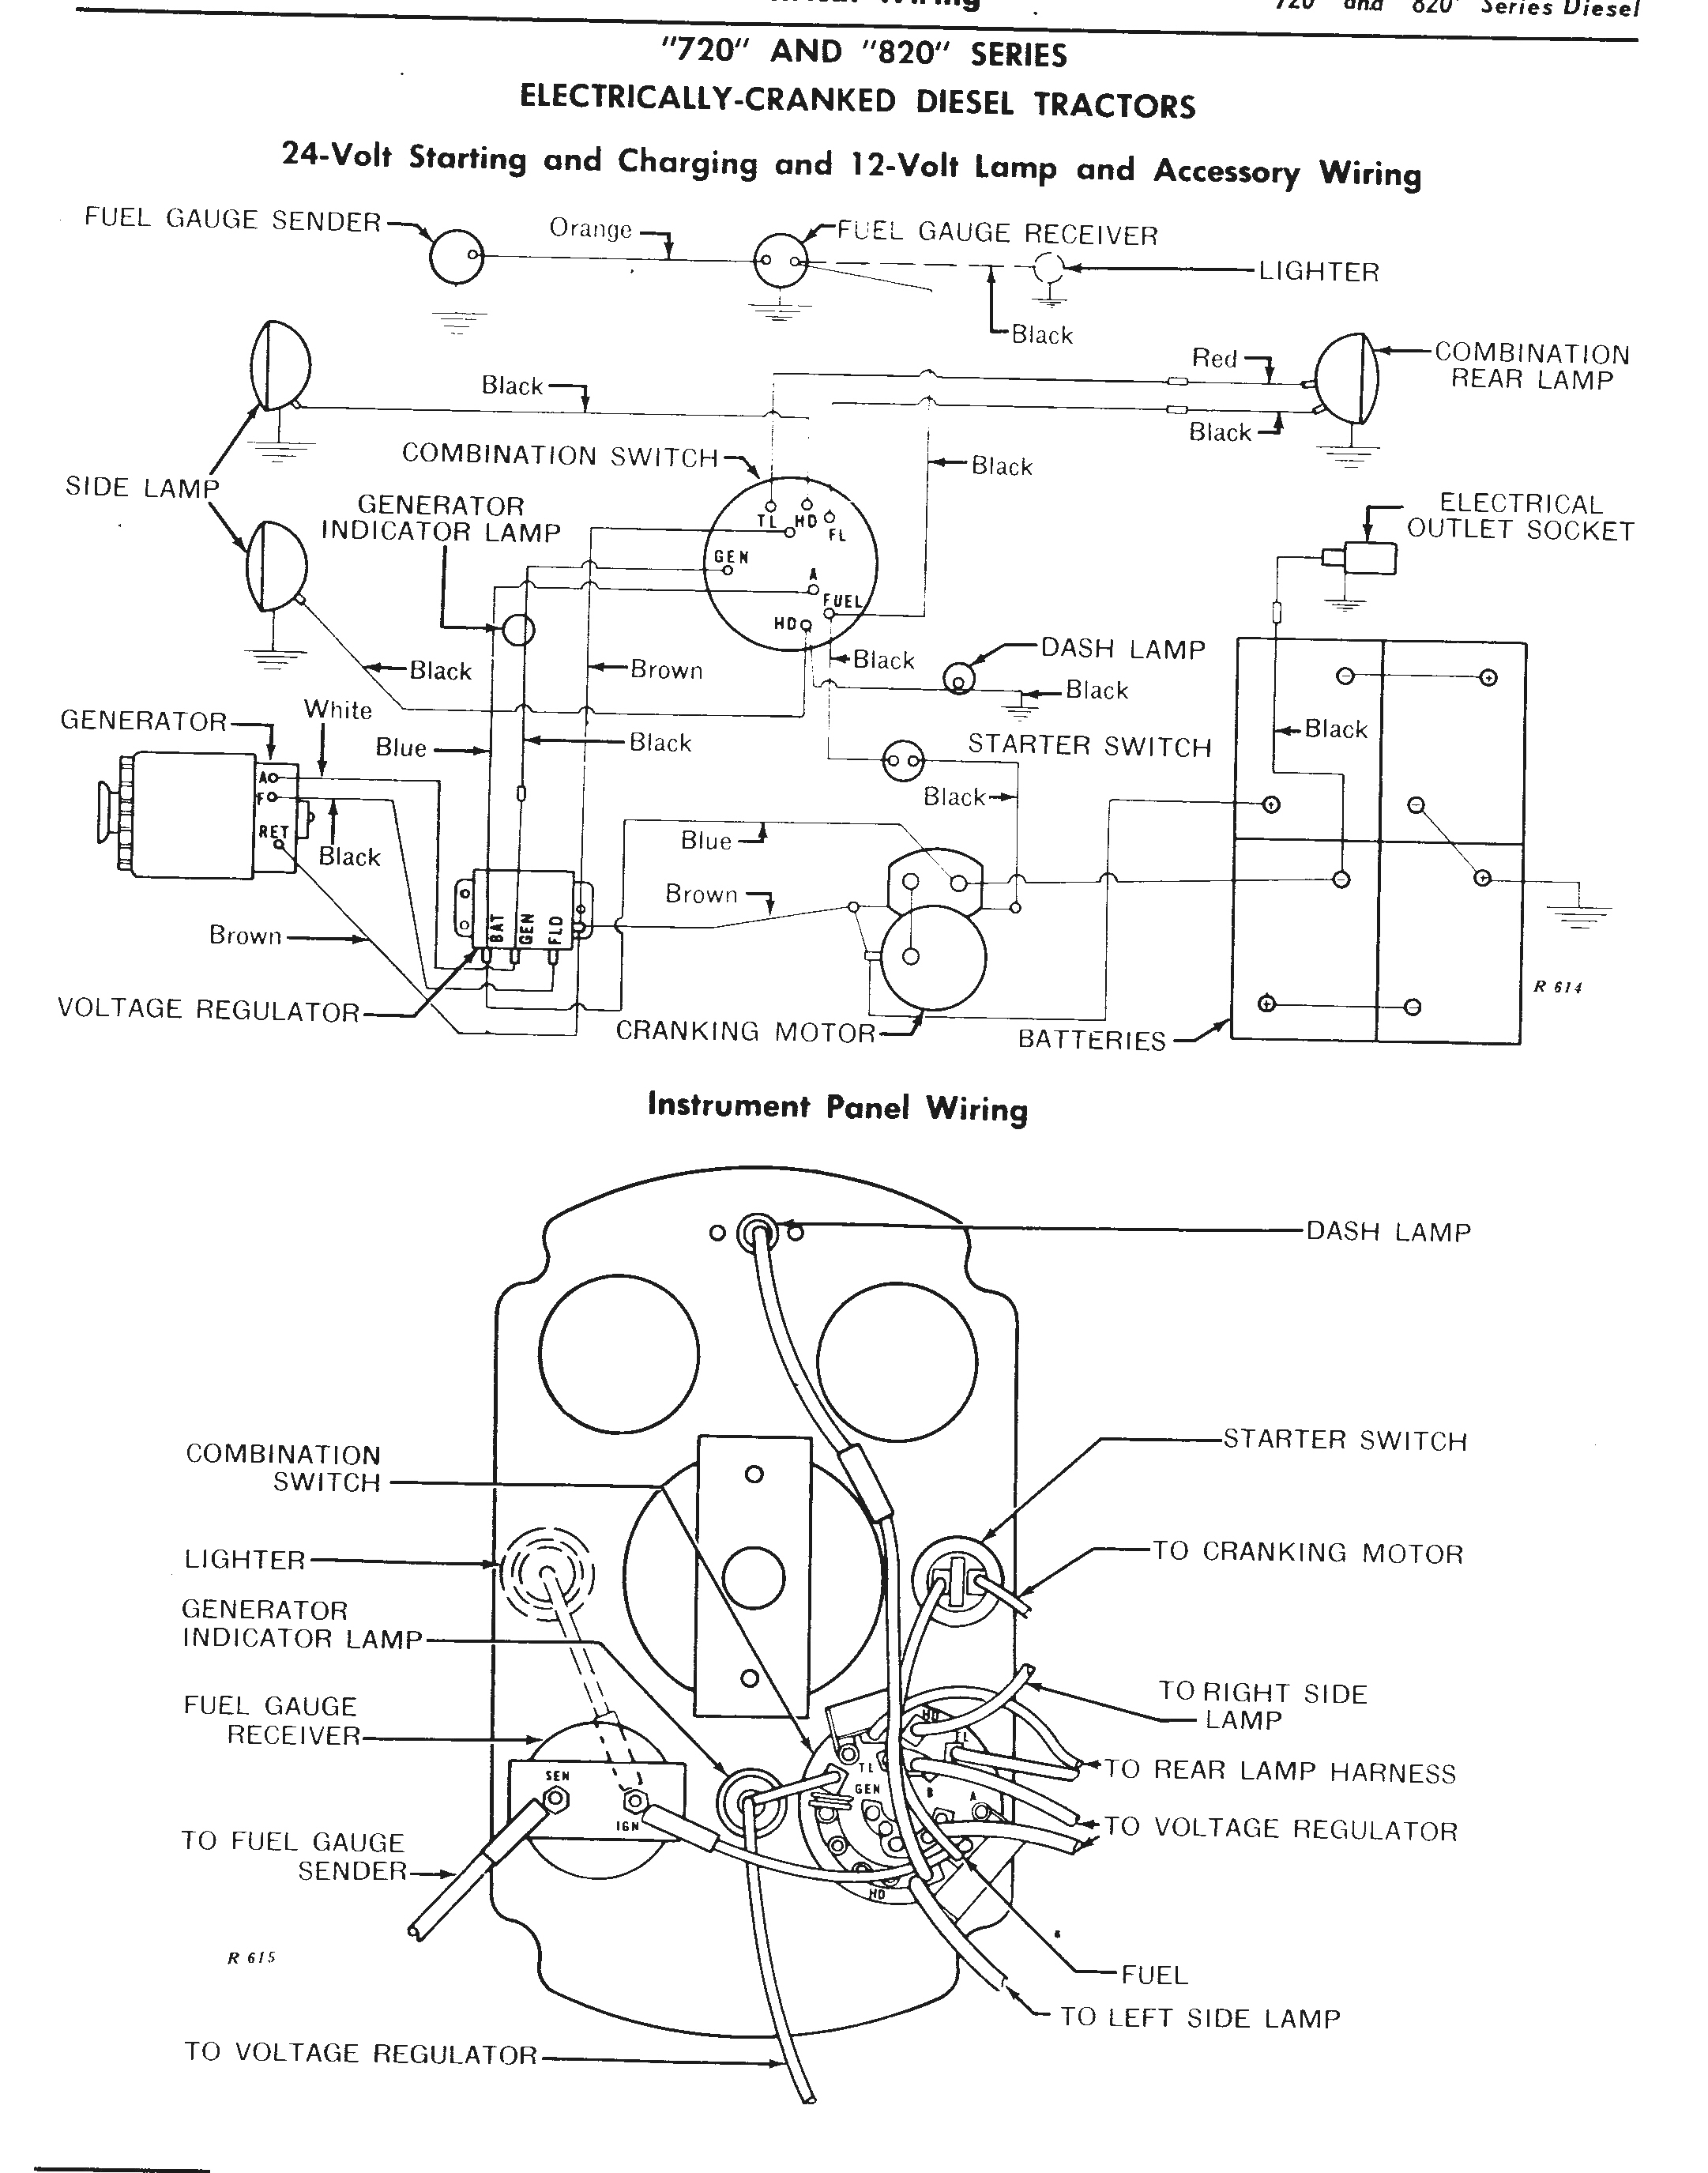 John Deere Wiring Diagrams on john deere wiring schematics